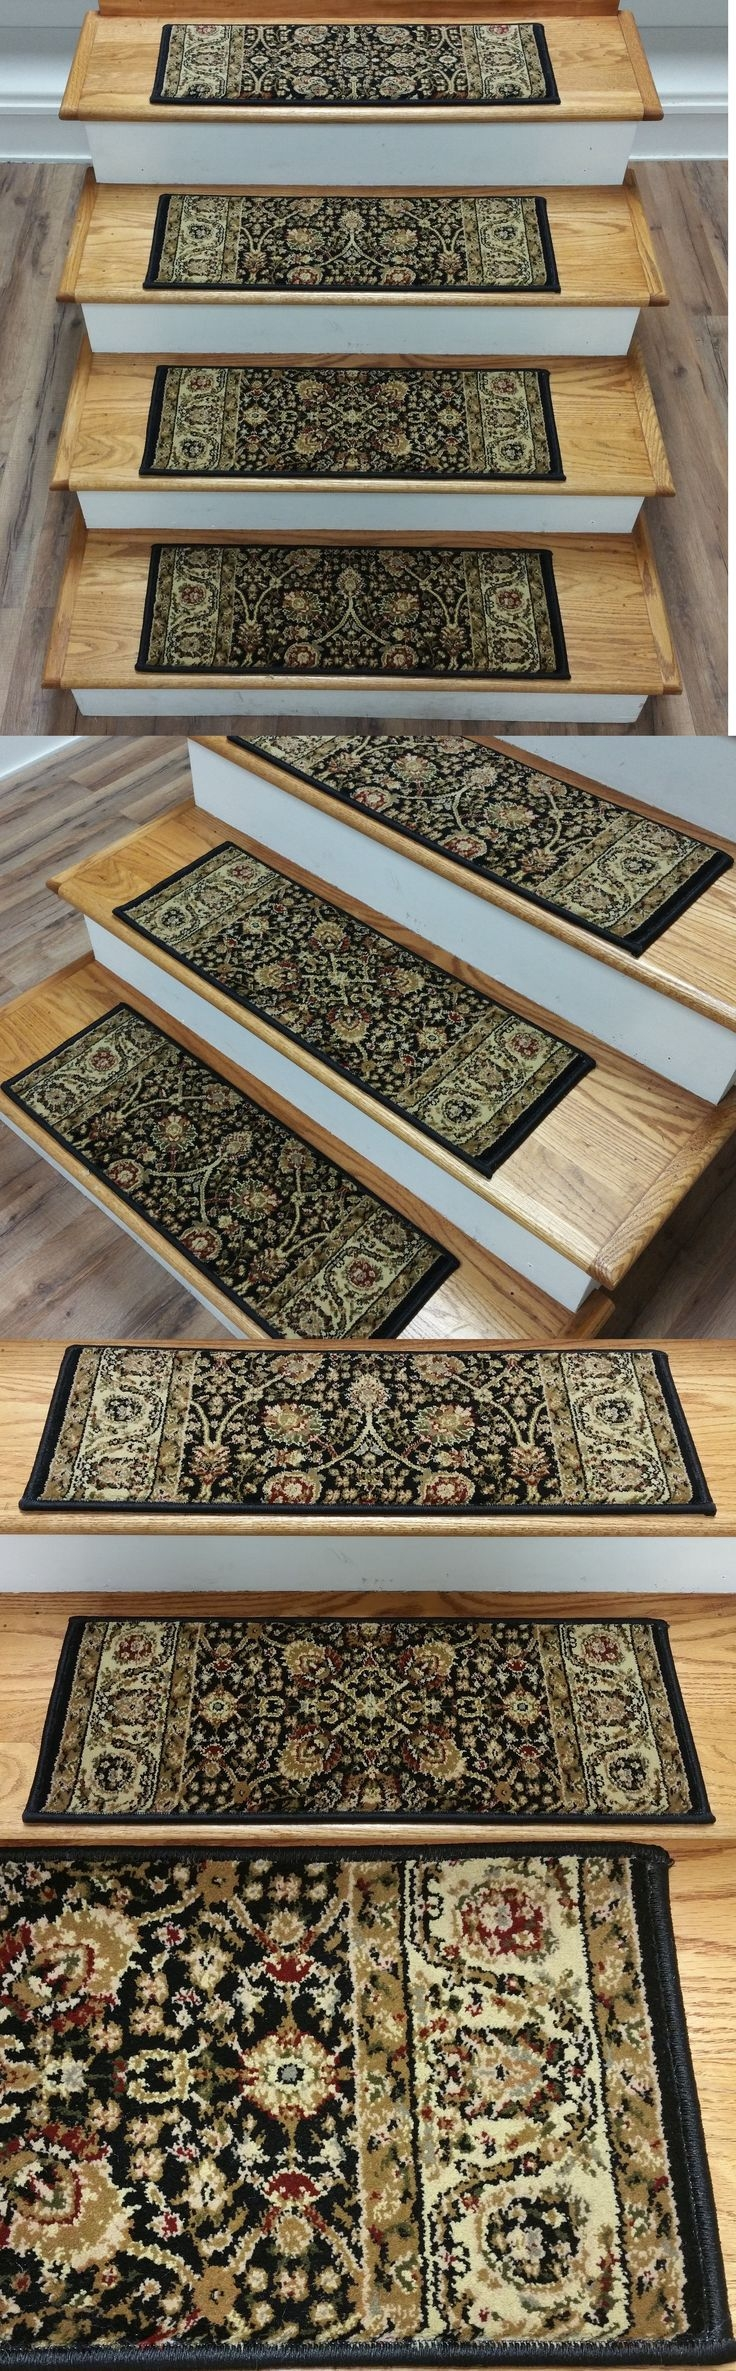 Best 25 Traditional Stair Tread Rugs Ideas Only On Pinterest For Rustic Stair Tread Rugs (#5 of 20)